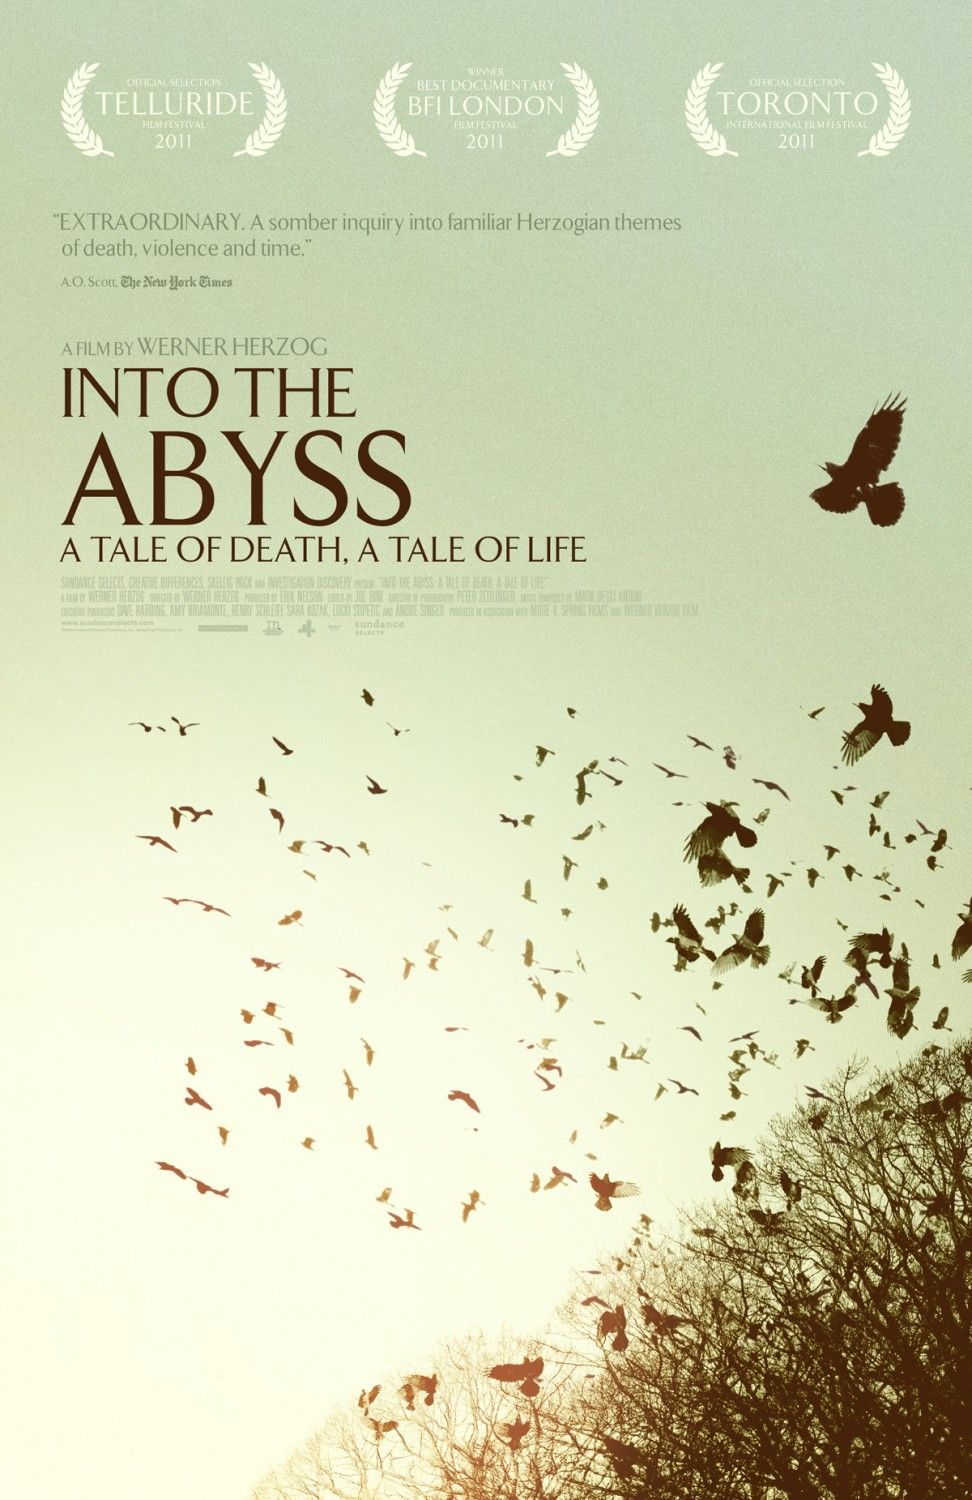 Into the abyss review movie posters design